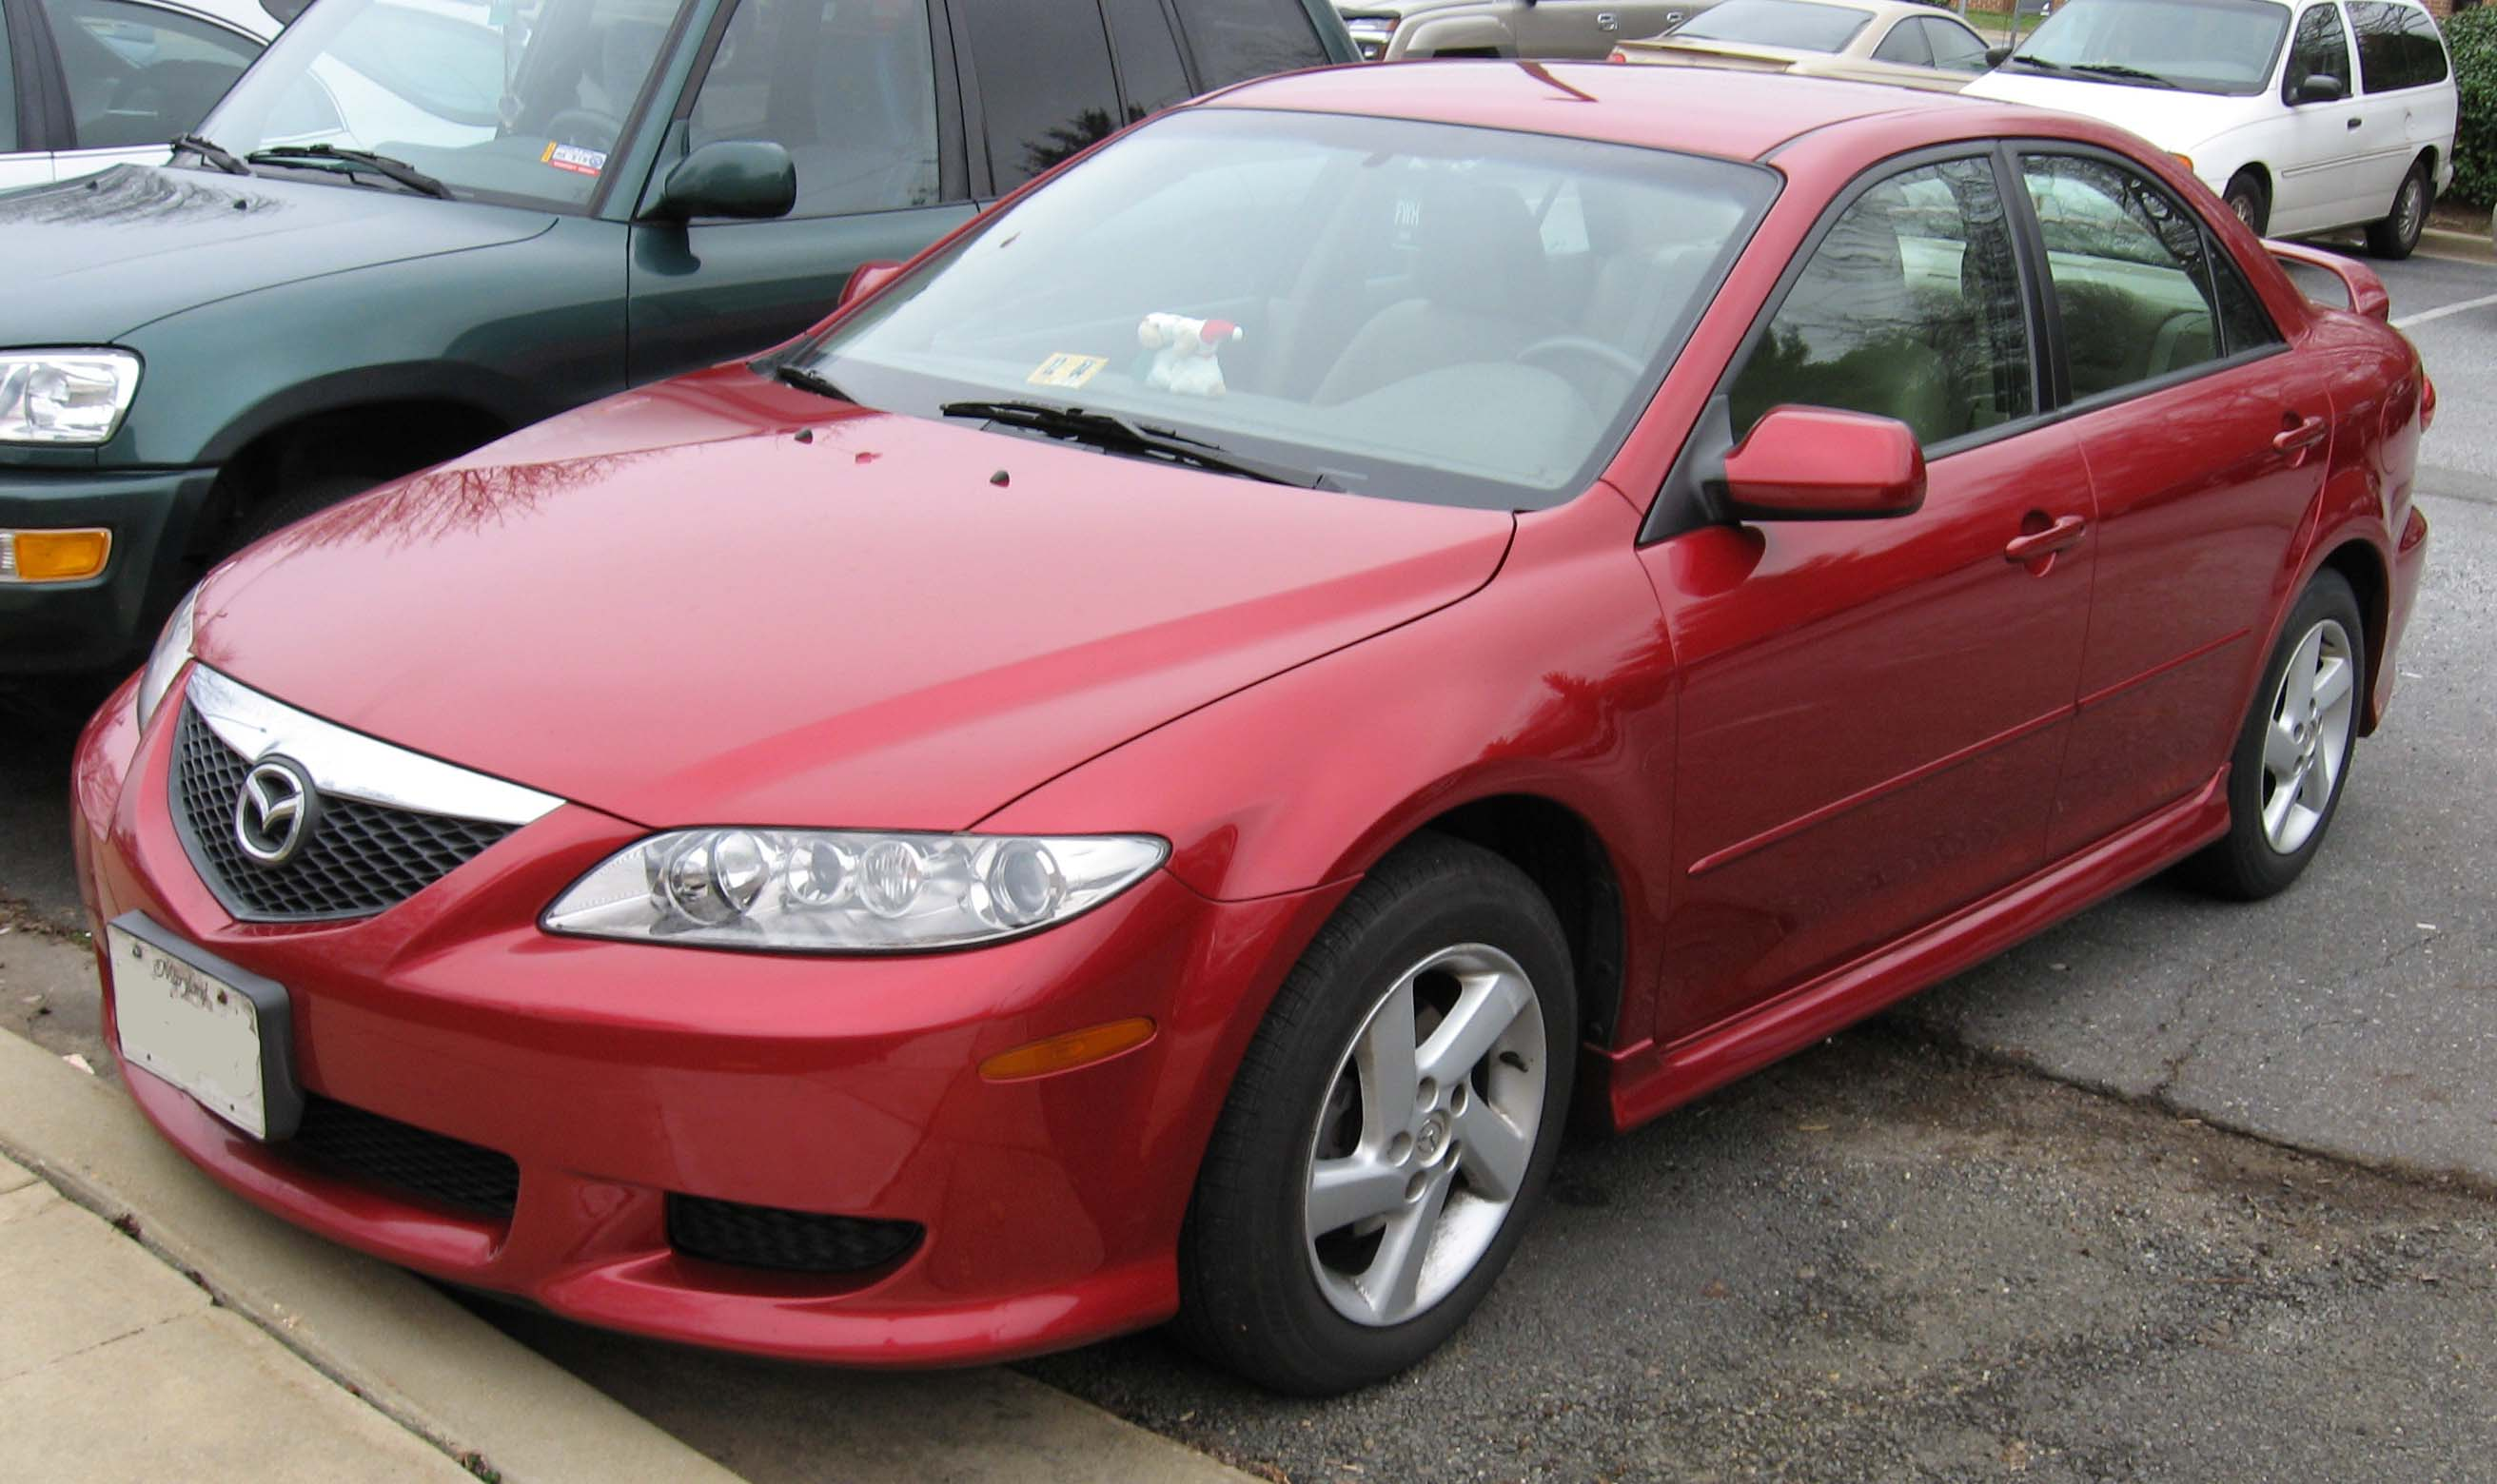 File:Mazda6 sedan.jpg - Wikipedia, the free encyclopedia